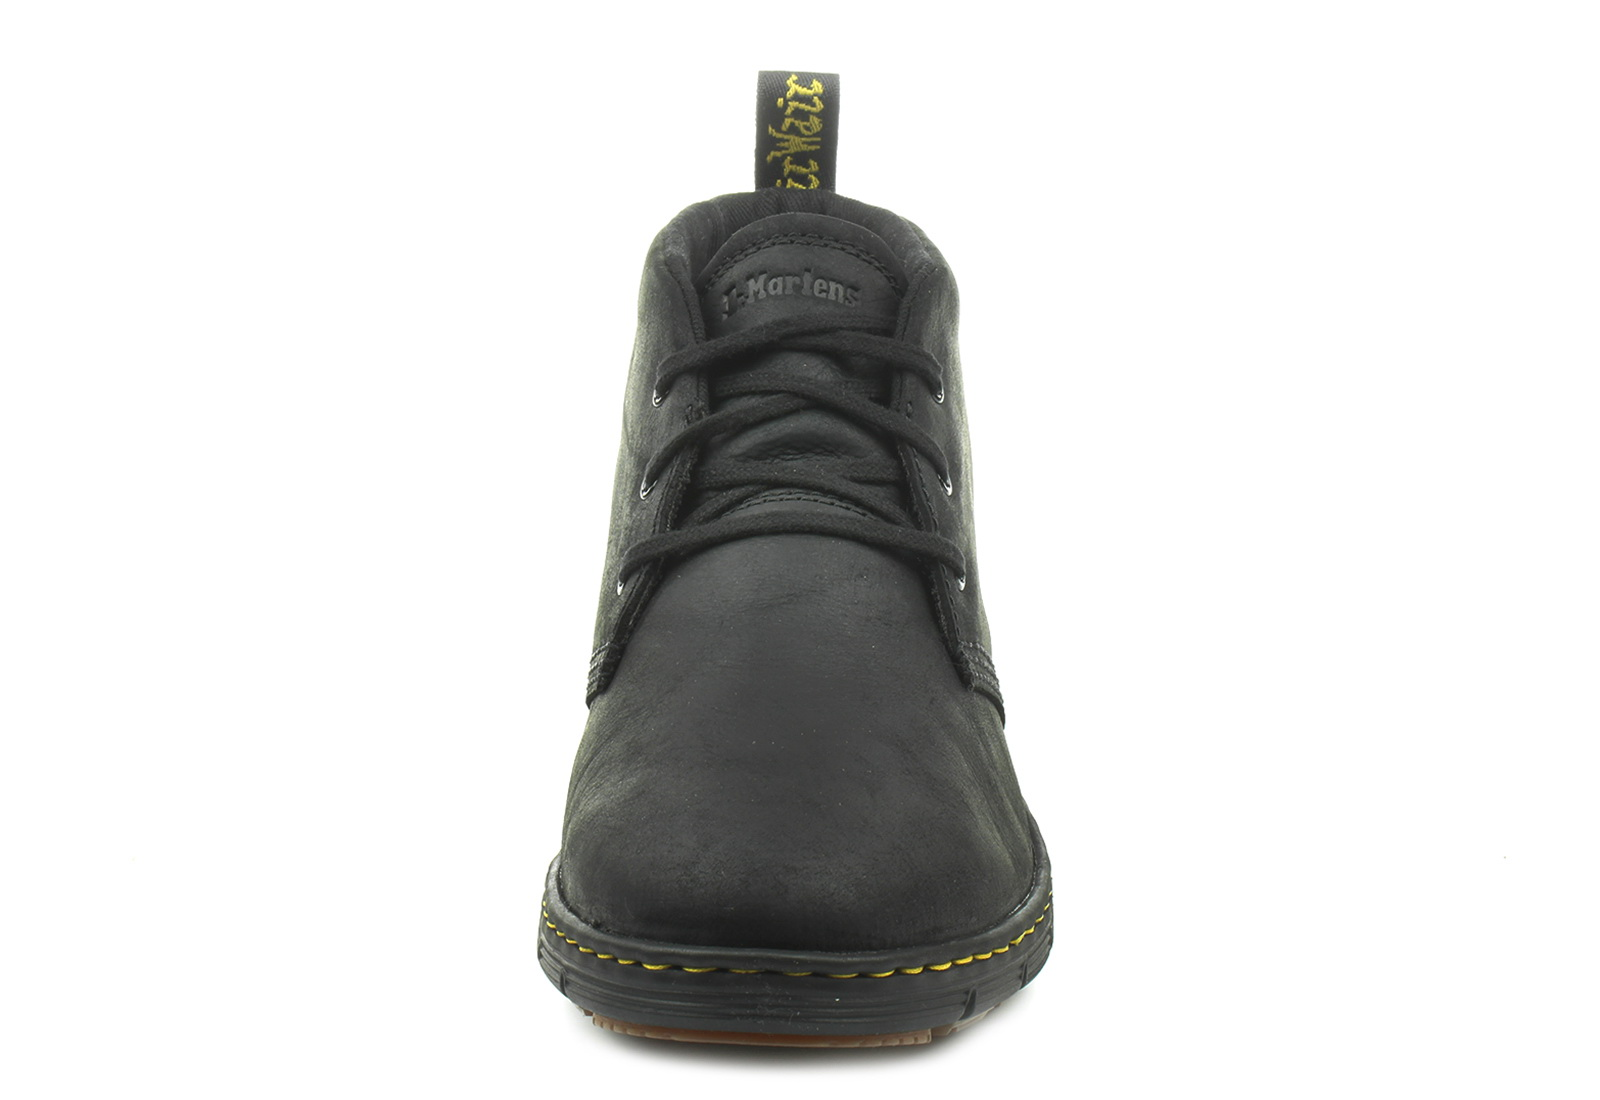 buty temperamentu odebrać Data wydania Dr Martens Shoes - Backline Mid - DM24574001 - Online shop for sneakers,  shoes and boots